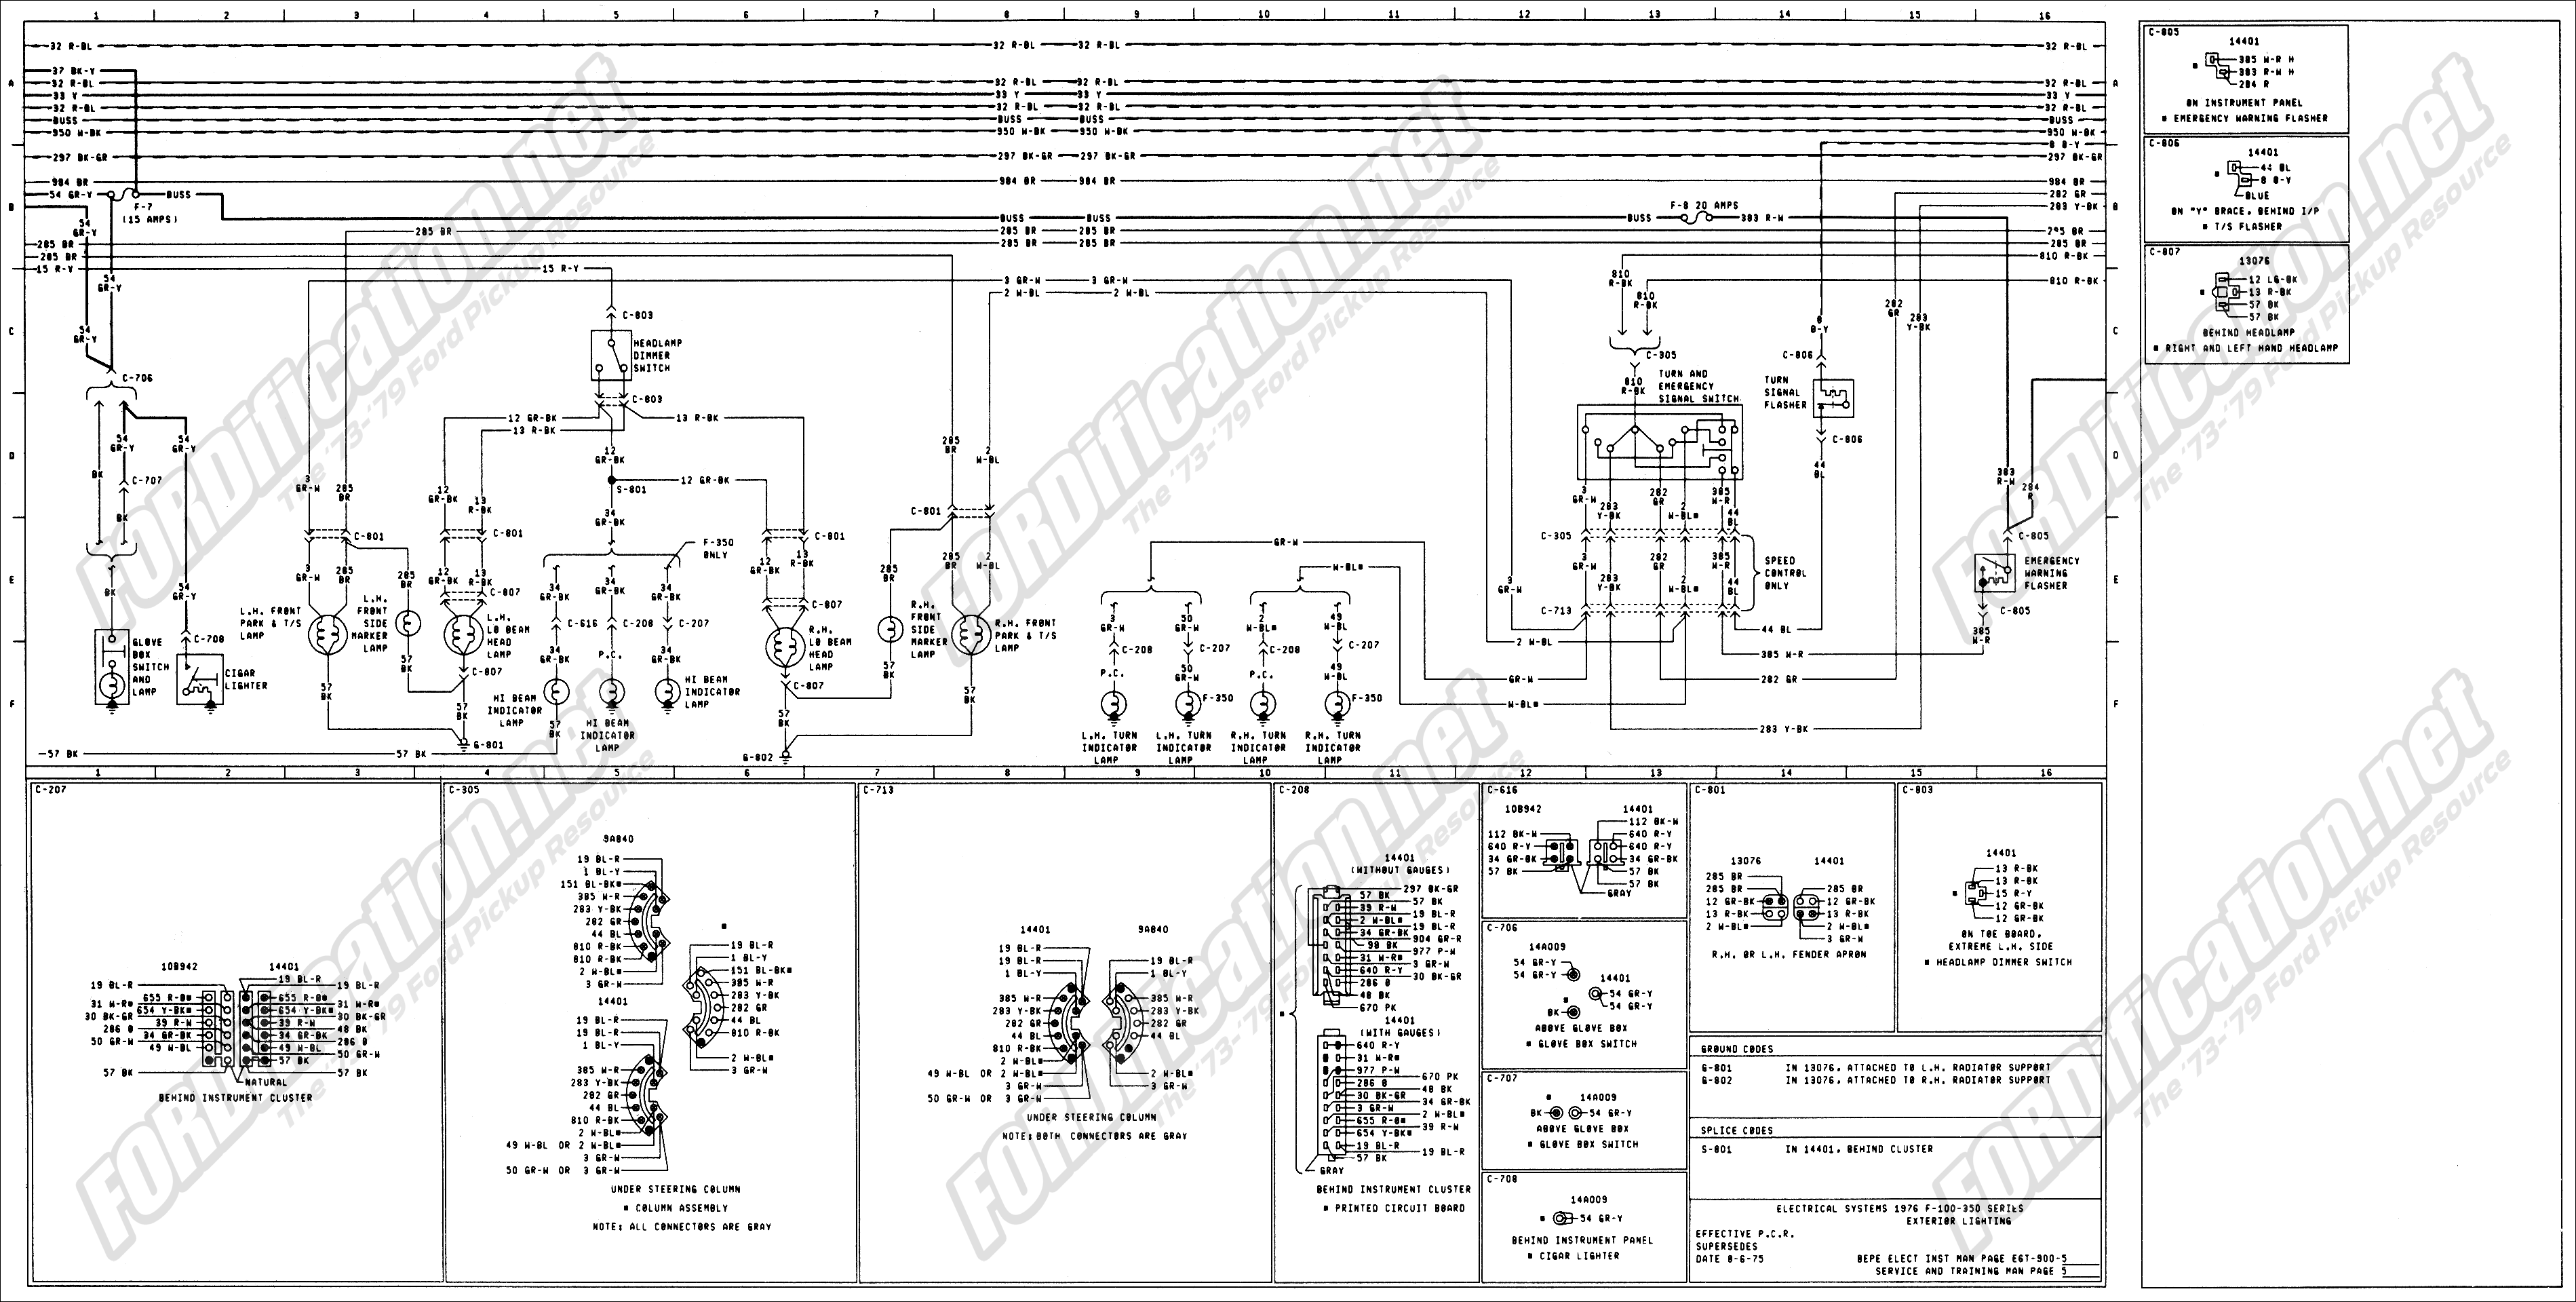 wiring_76master_5of9?resize\\d665%2C336 1977 corvette wiring diagram efcaviation com 1977 chevy corvette dash wiring diagram at nearapp.co